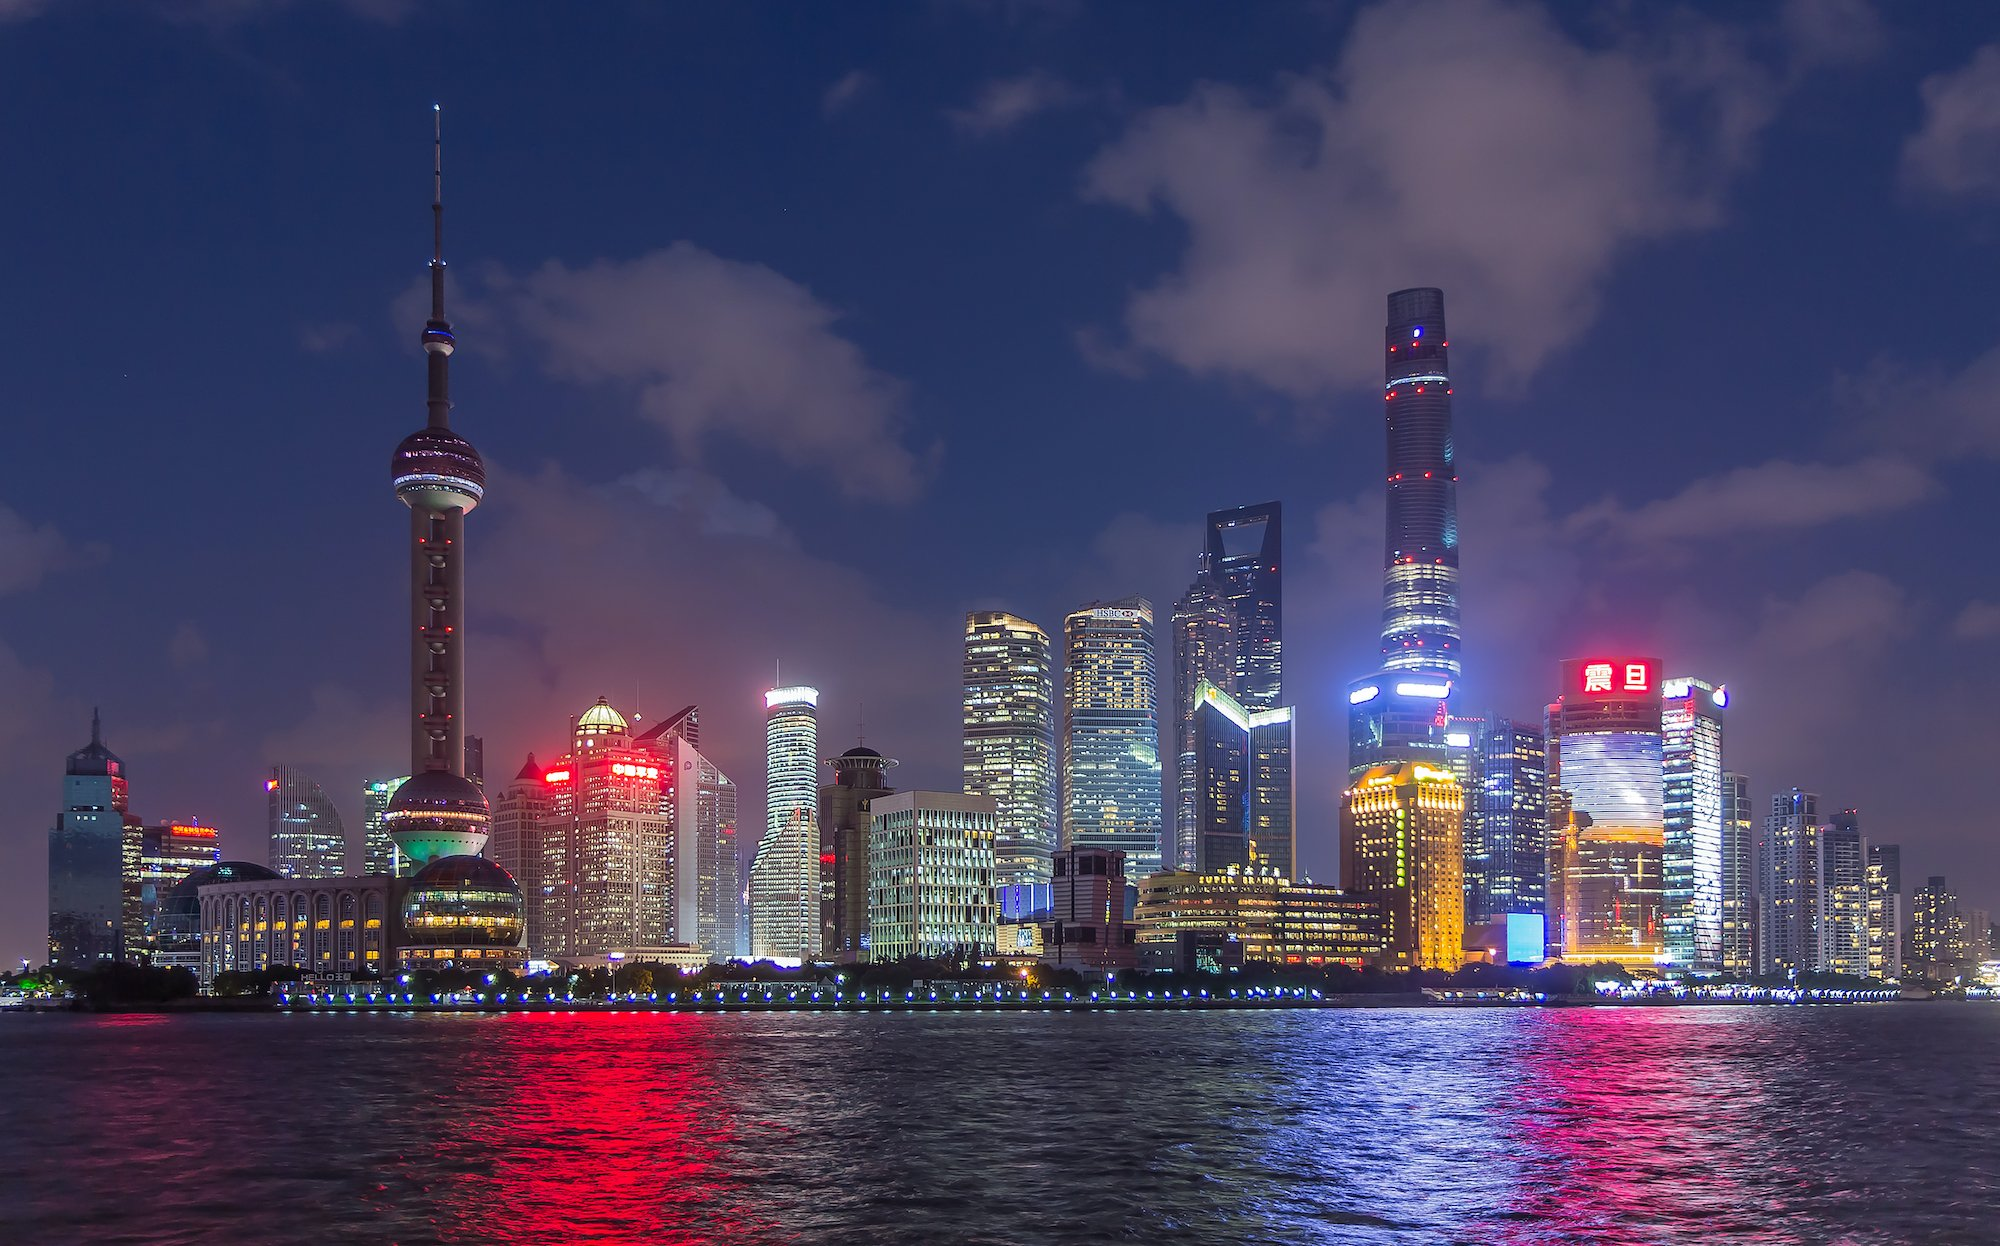 Skyline of Shanghai Pudong at sunset